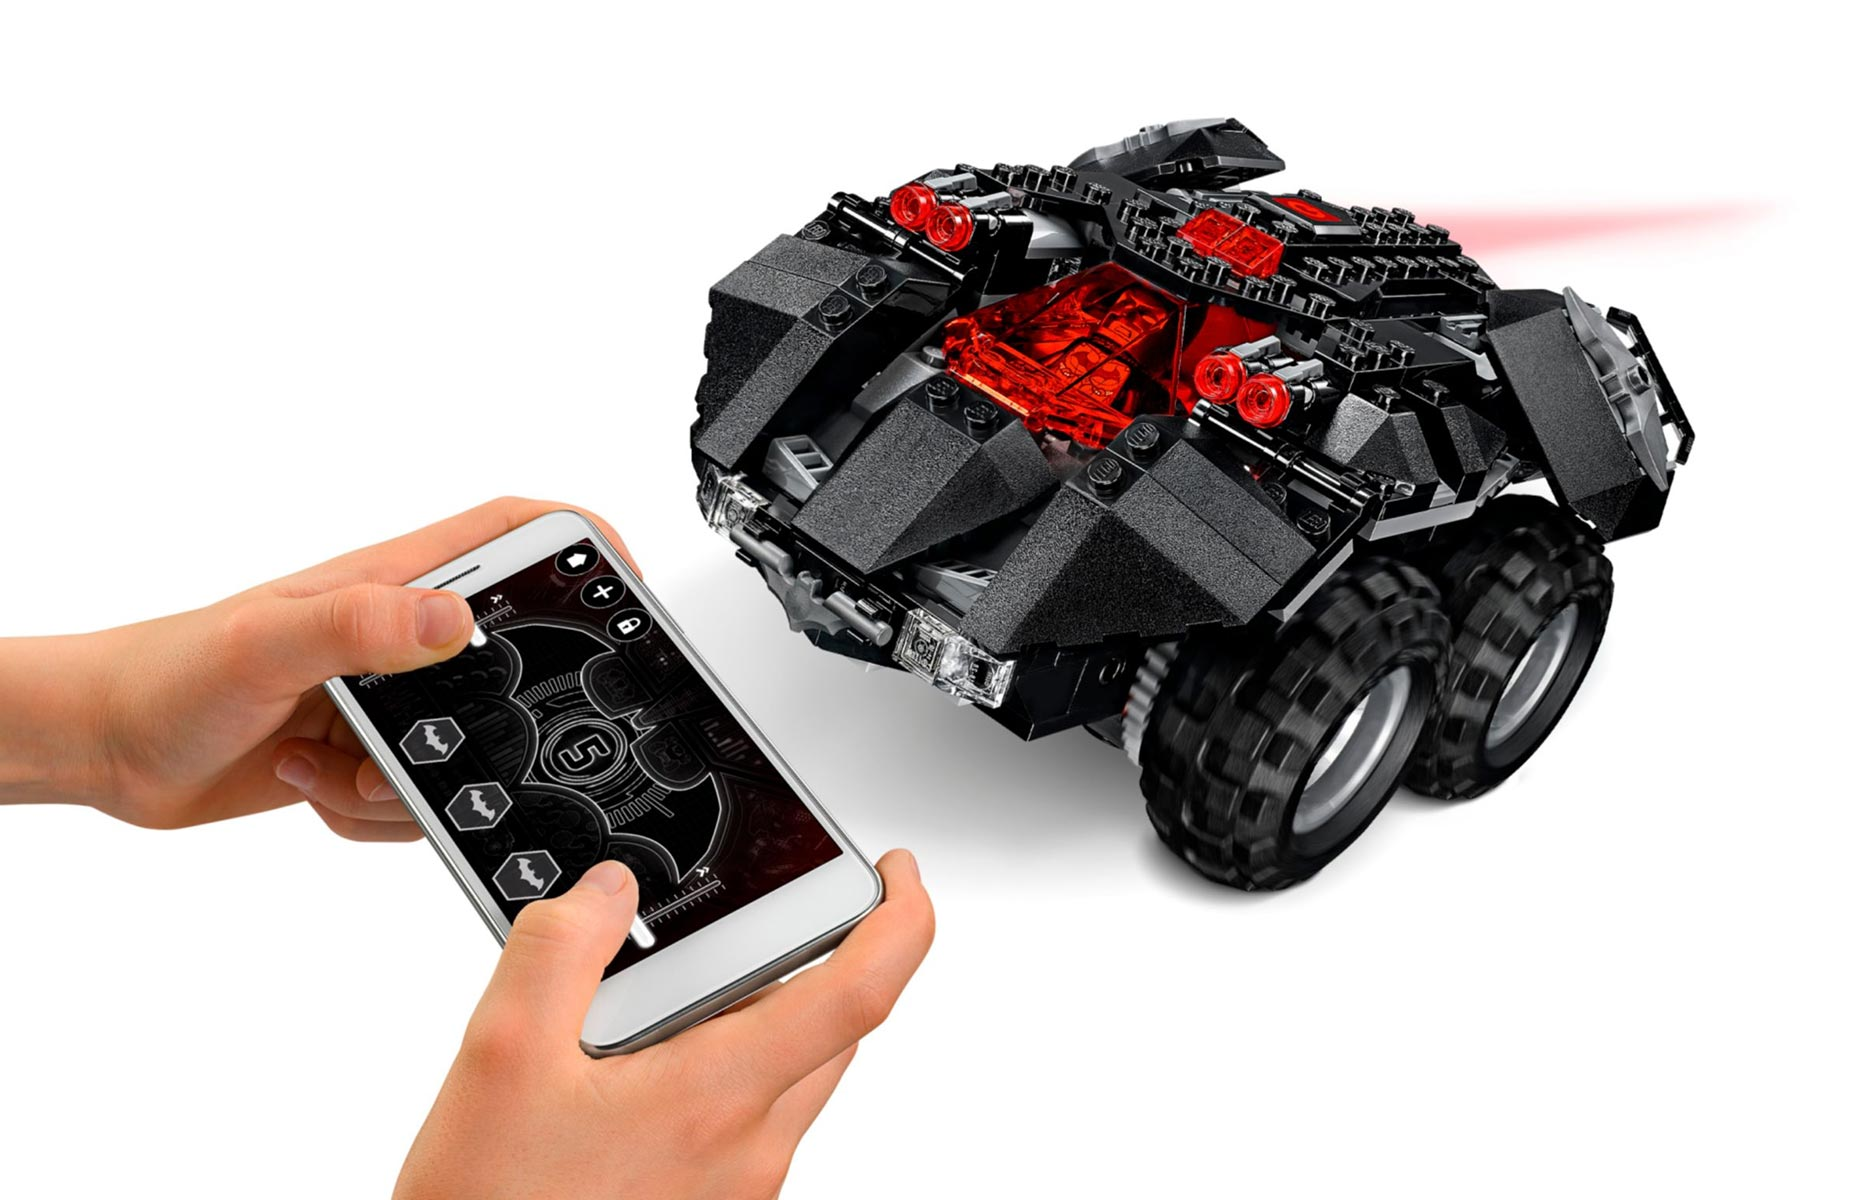 lego batman app controlled batmobile 76112 geekalerts. Black Bedroom Furniture Sets. Home Design Ideas